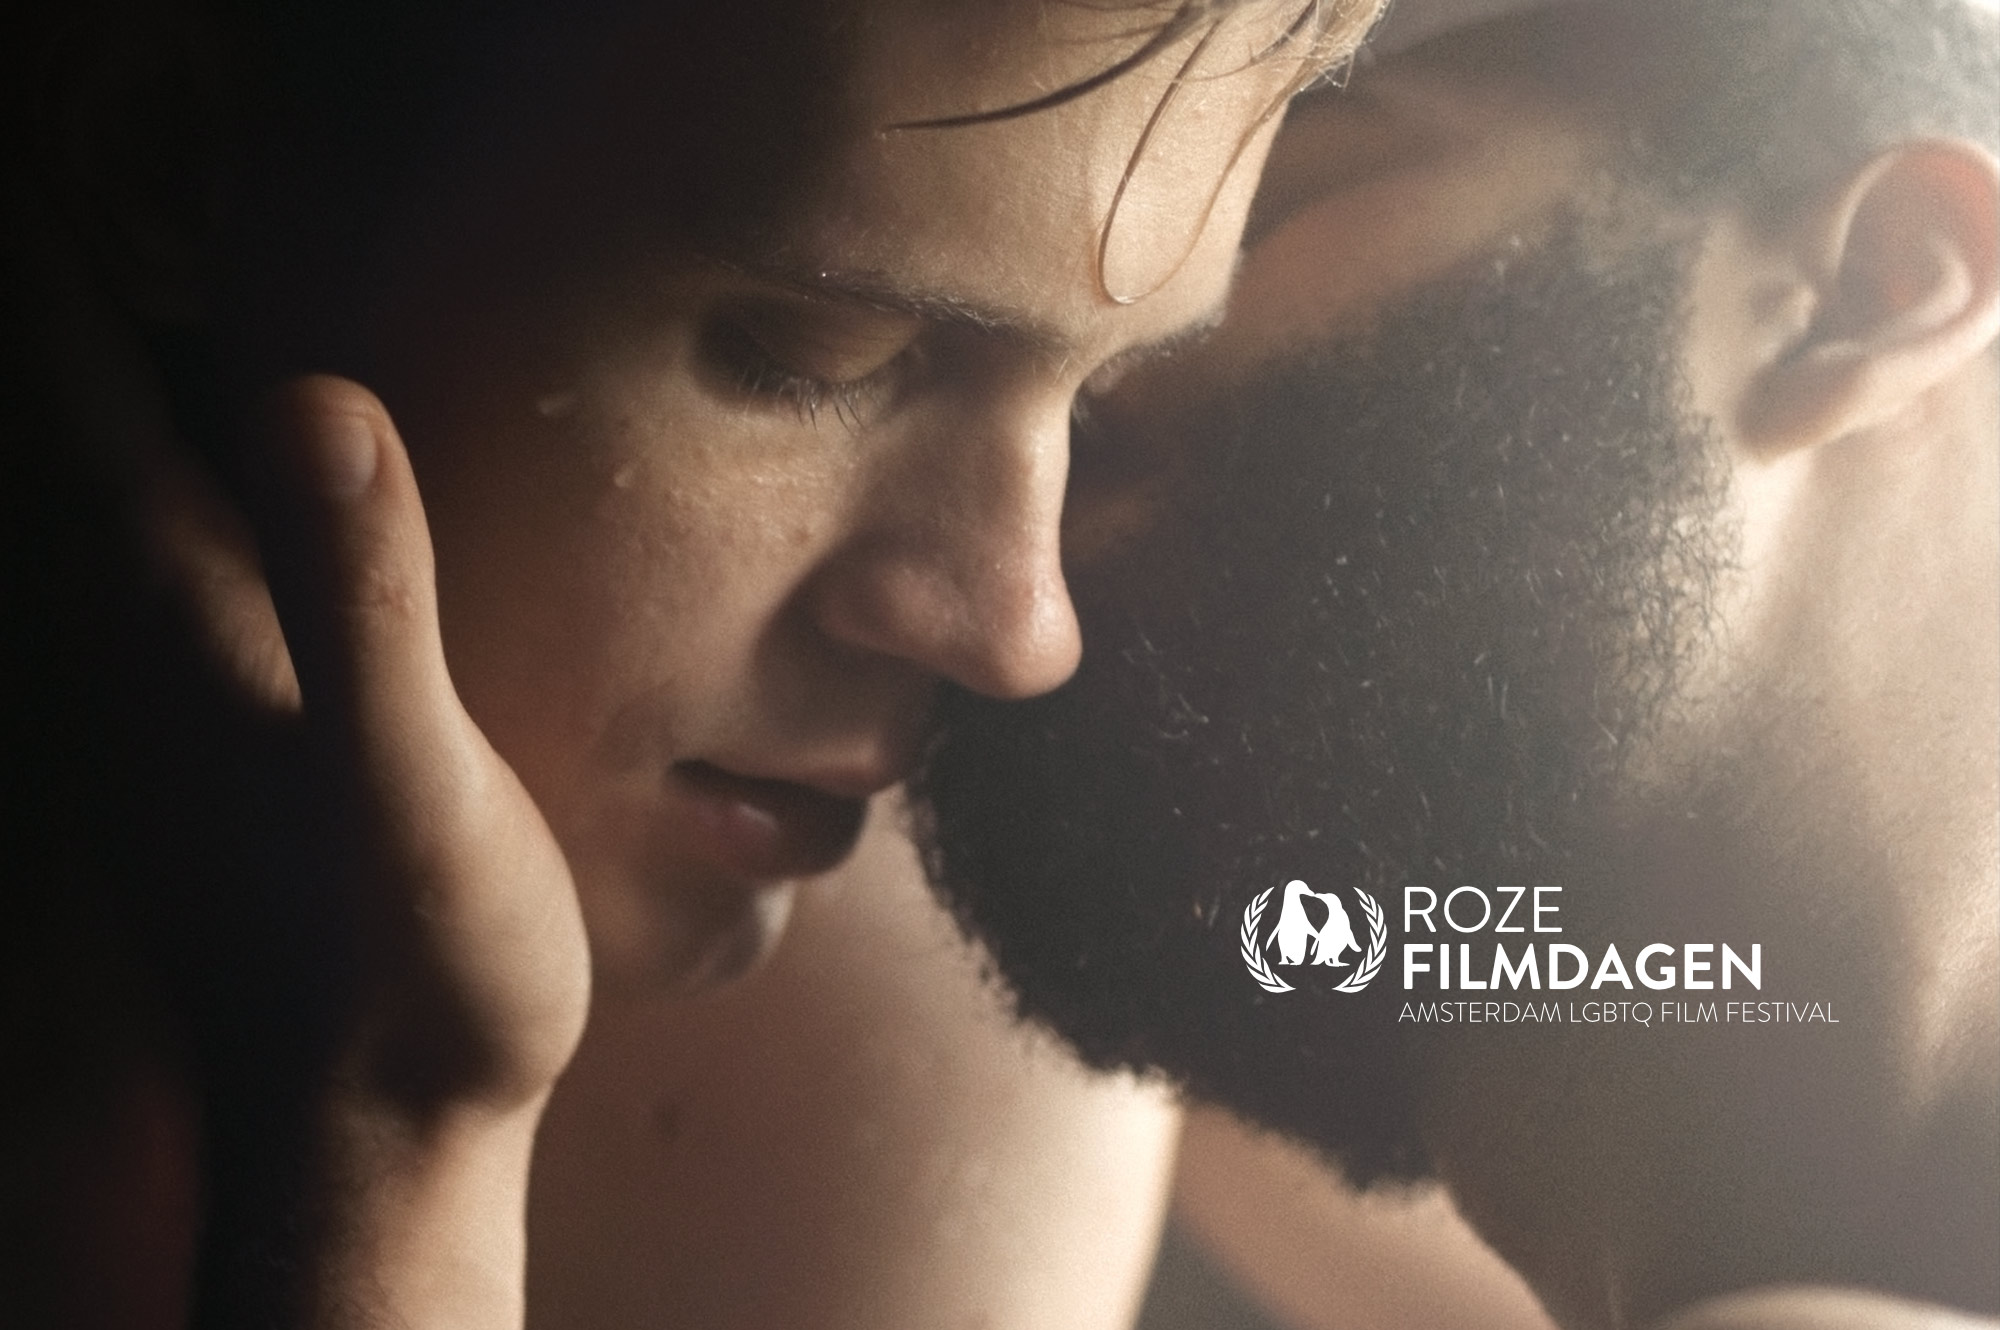 Best Gay Movies 2018 selected for Roze Filmdagen Amsterdam